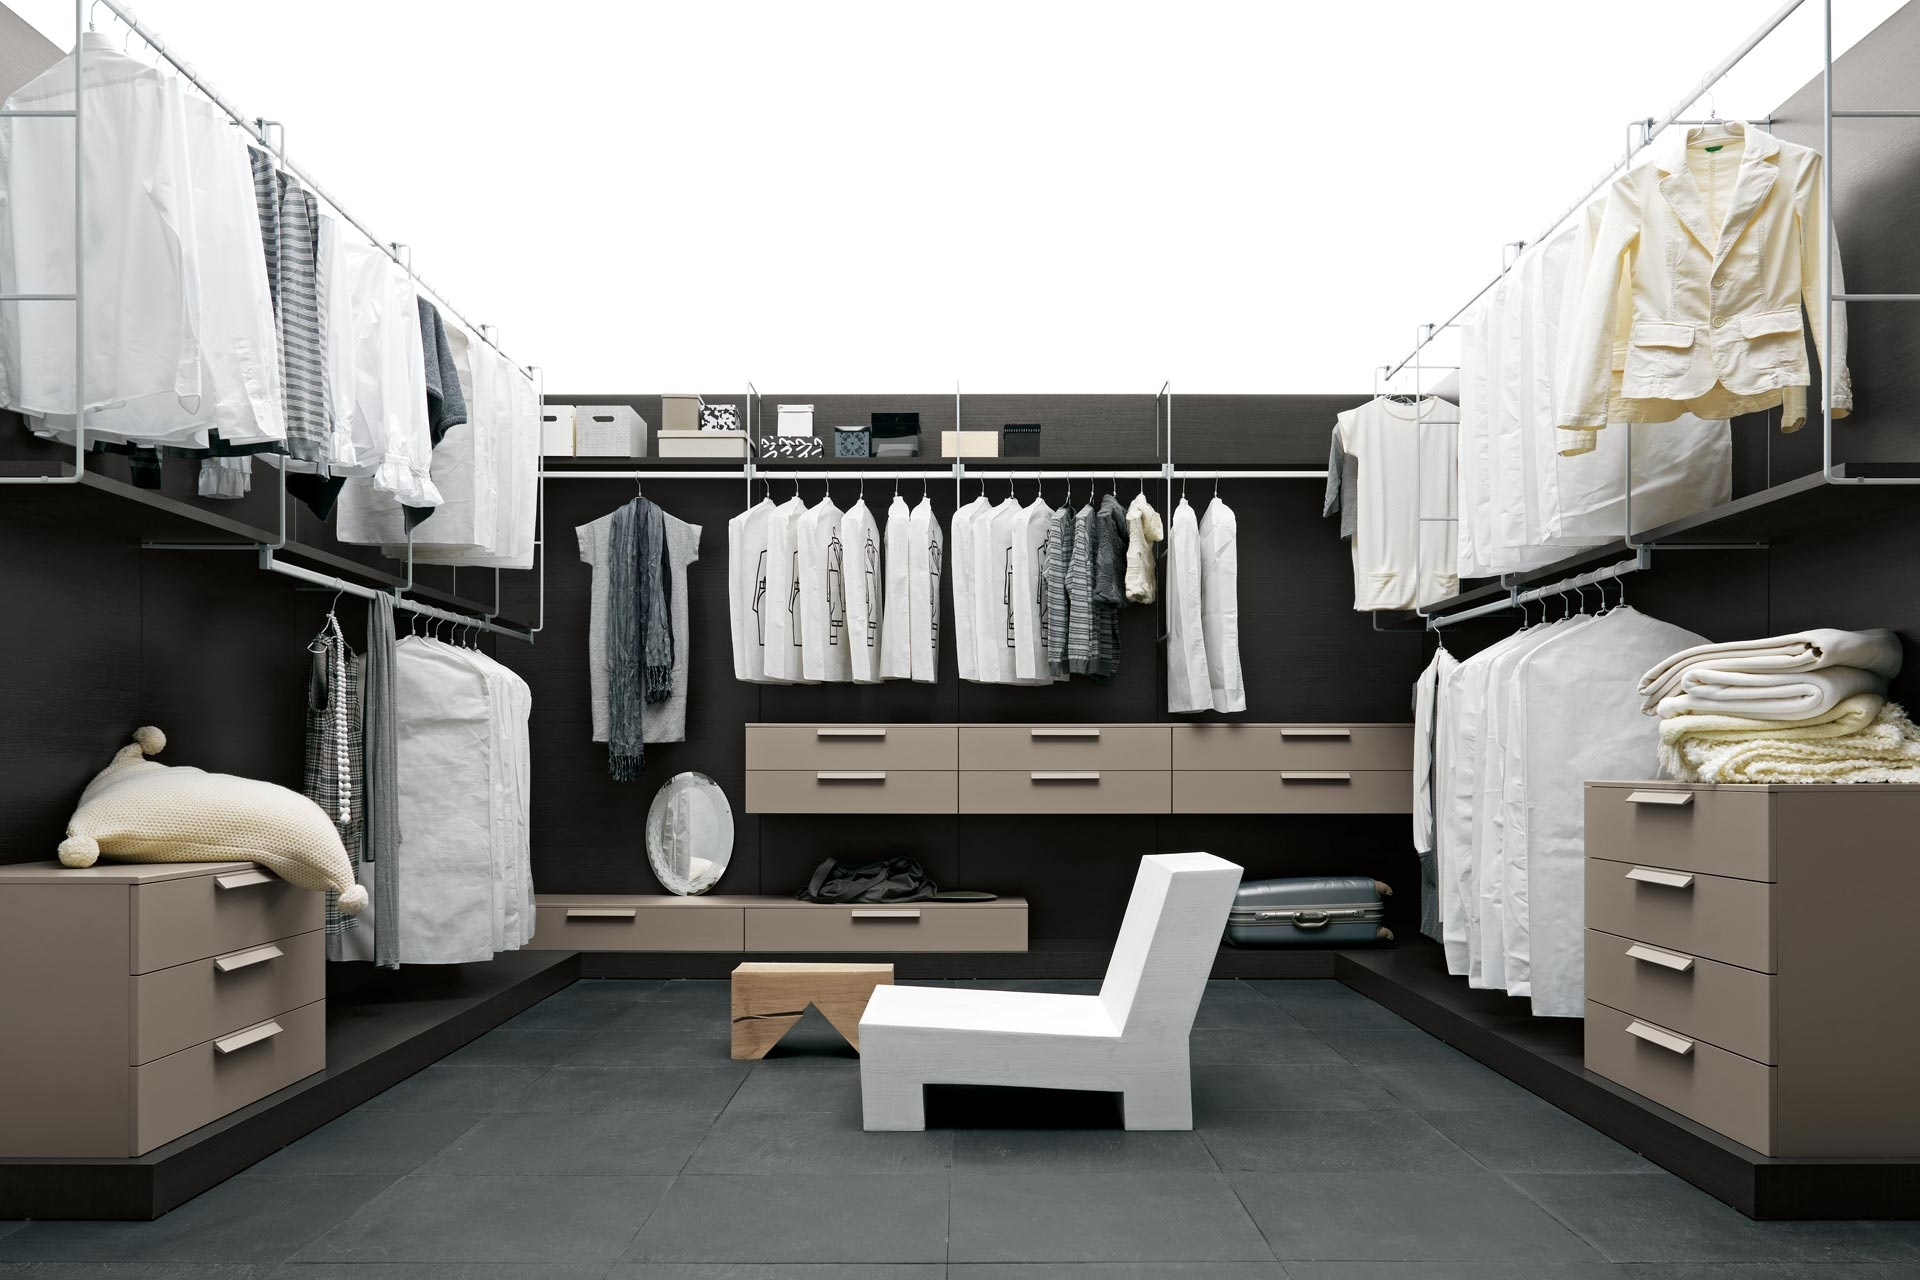 Latest Luxury Closet Shelving (Image 3 of 4)